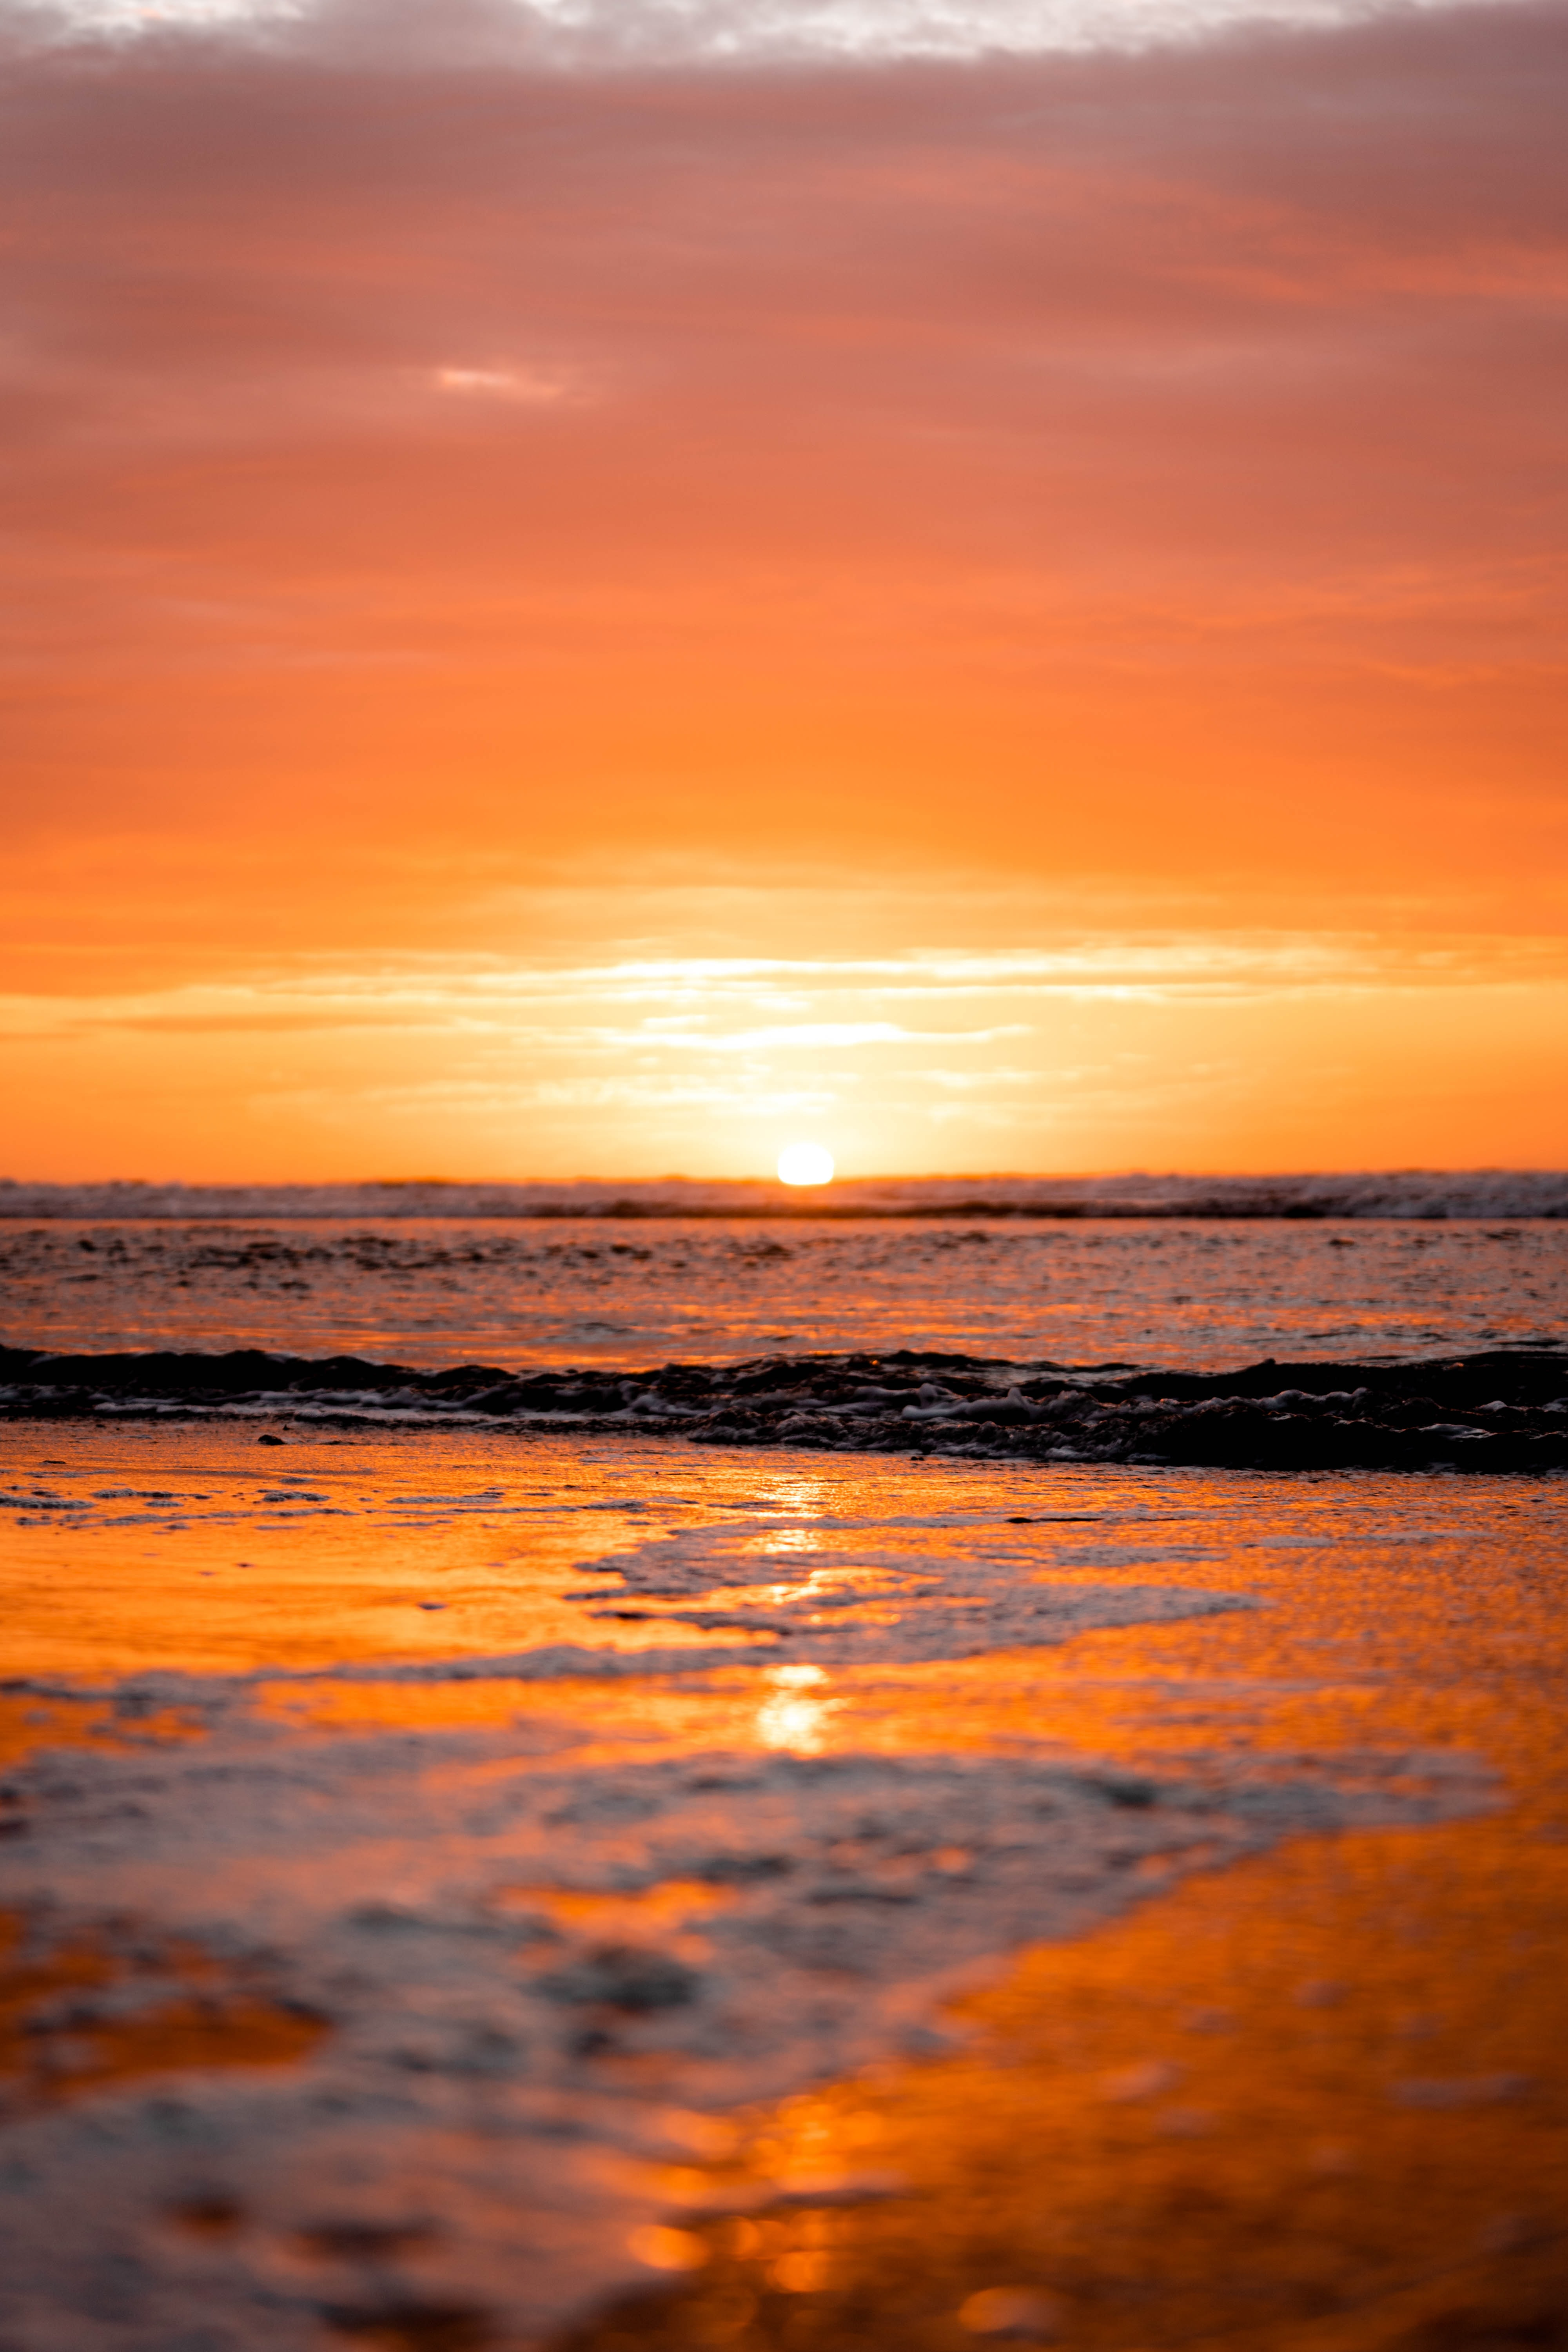 124060 download wallpaper Nature, Ocean, Water, Horizon, Beach, Sunset, Sun screensavers and pictures for free